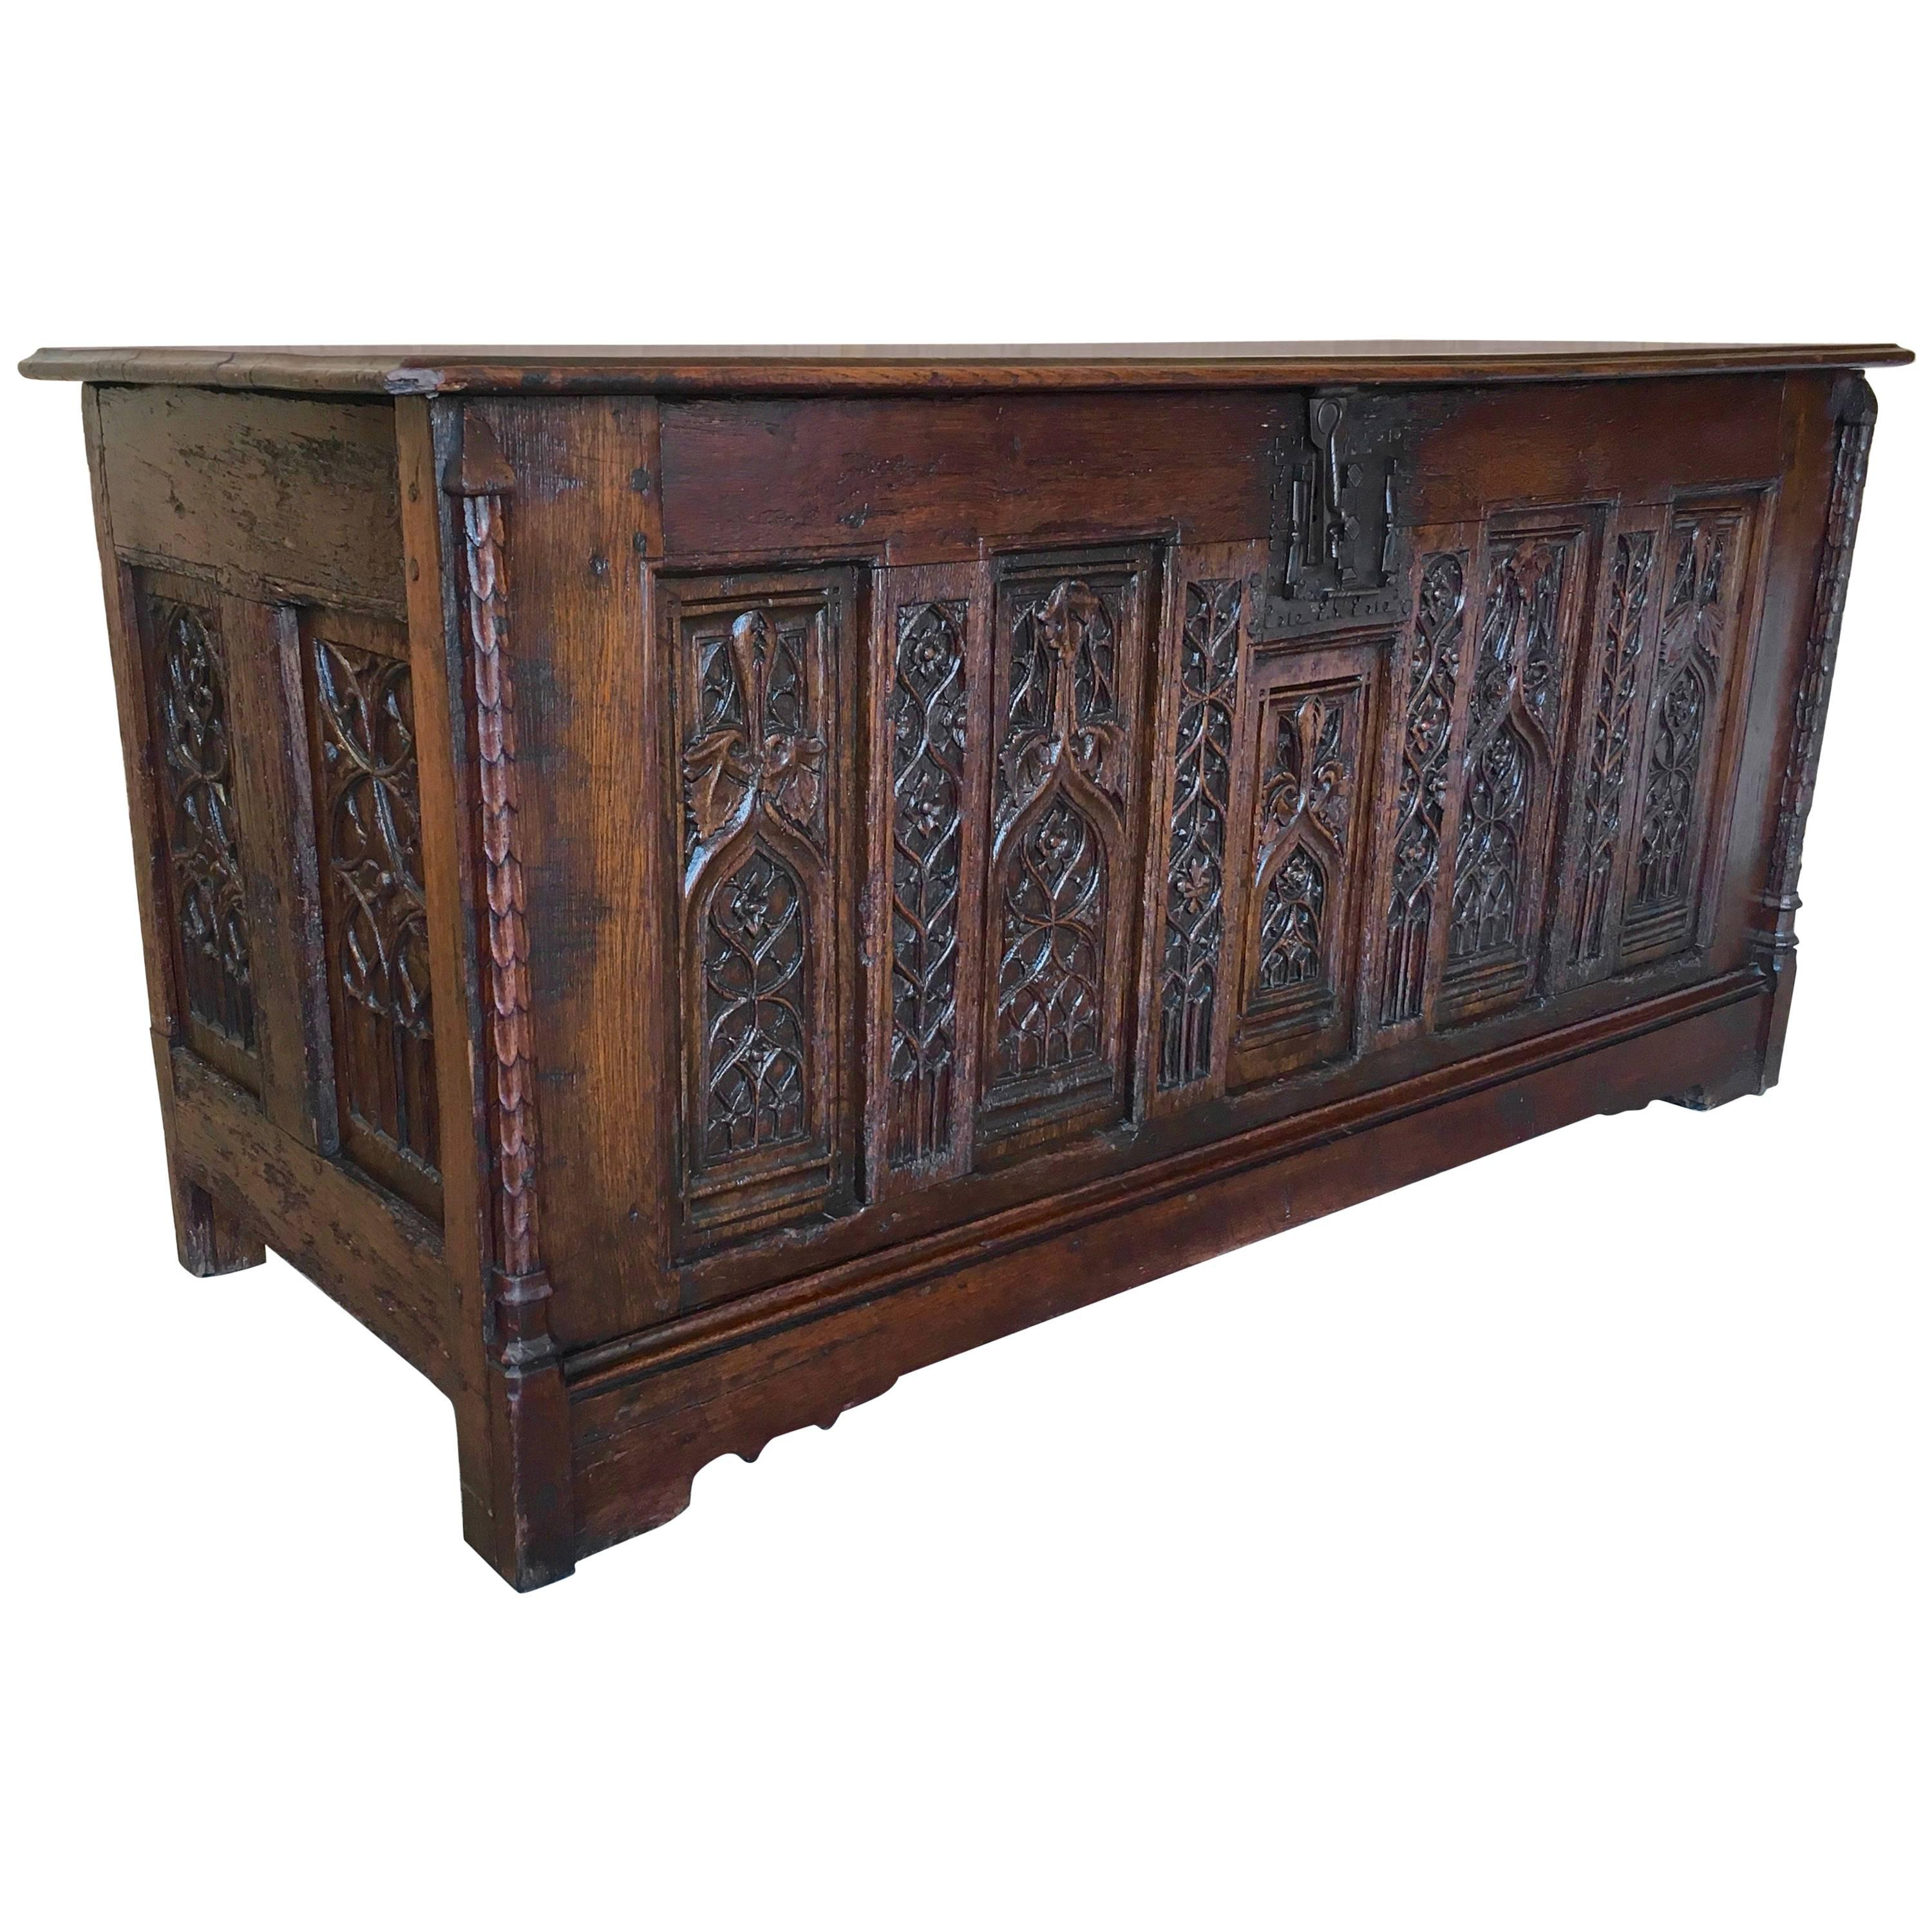 Gothic Desk Converted From A Chest